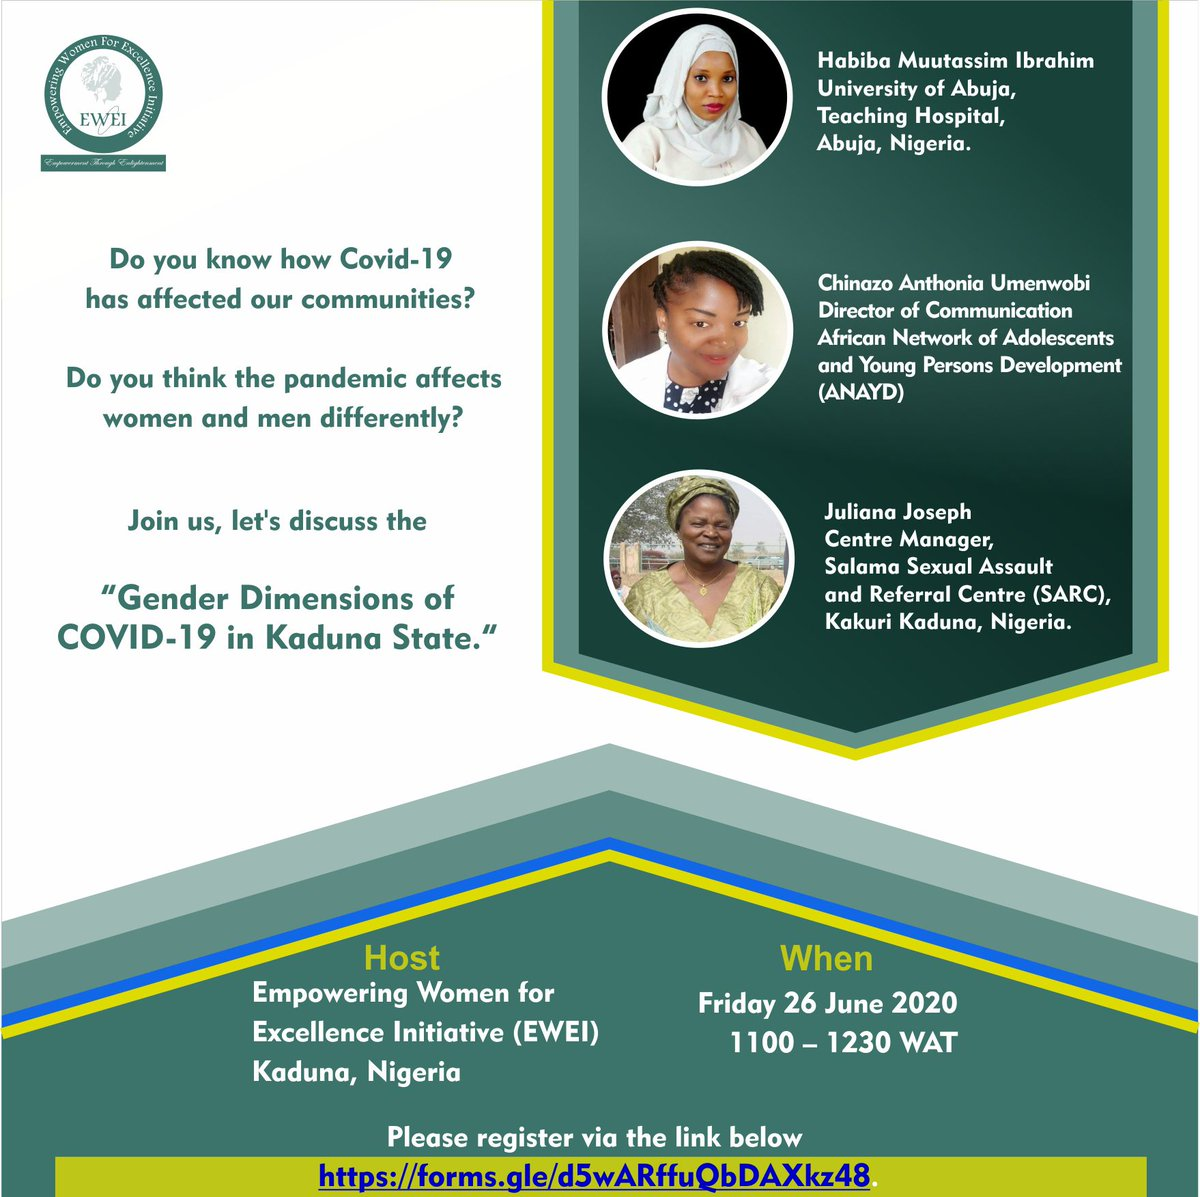 """Join us, let's discuss the """"Gender Dimensions of COVID-19 in Kaduna State.""""  Register via the link below to be part of the conversation.  https://forms.gle/d5wARffuQbDAXkz48…pic.twitter.com/UHYwDsLlaC"""